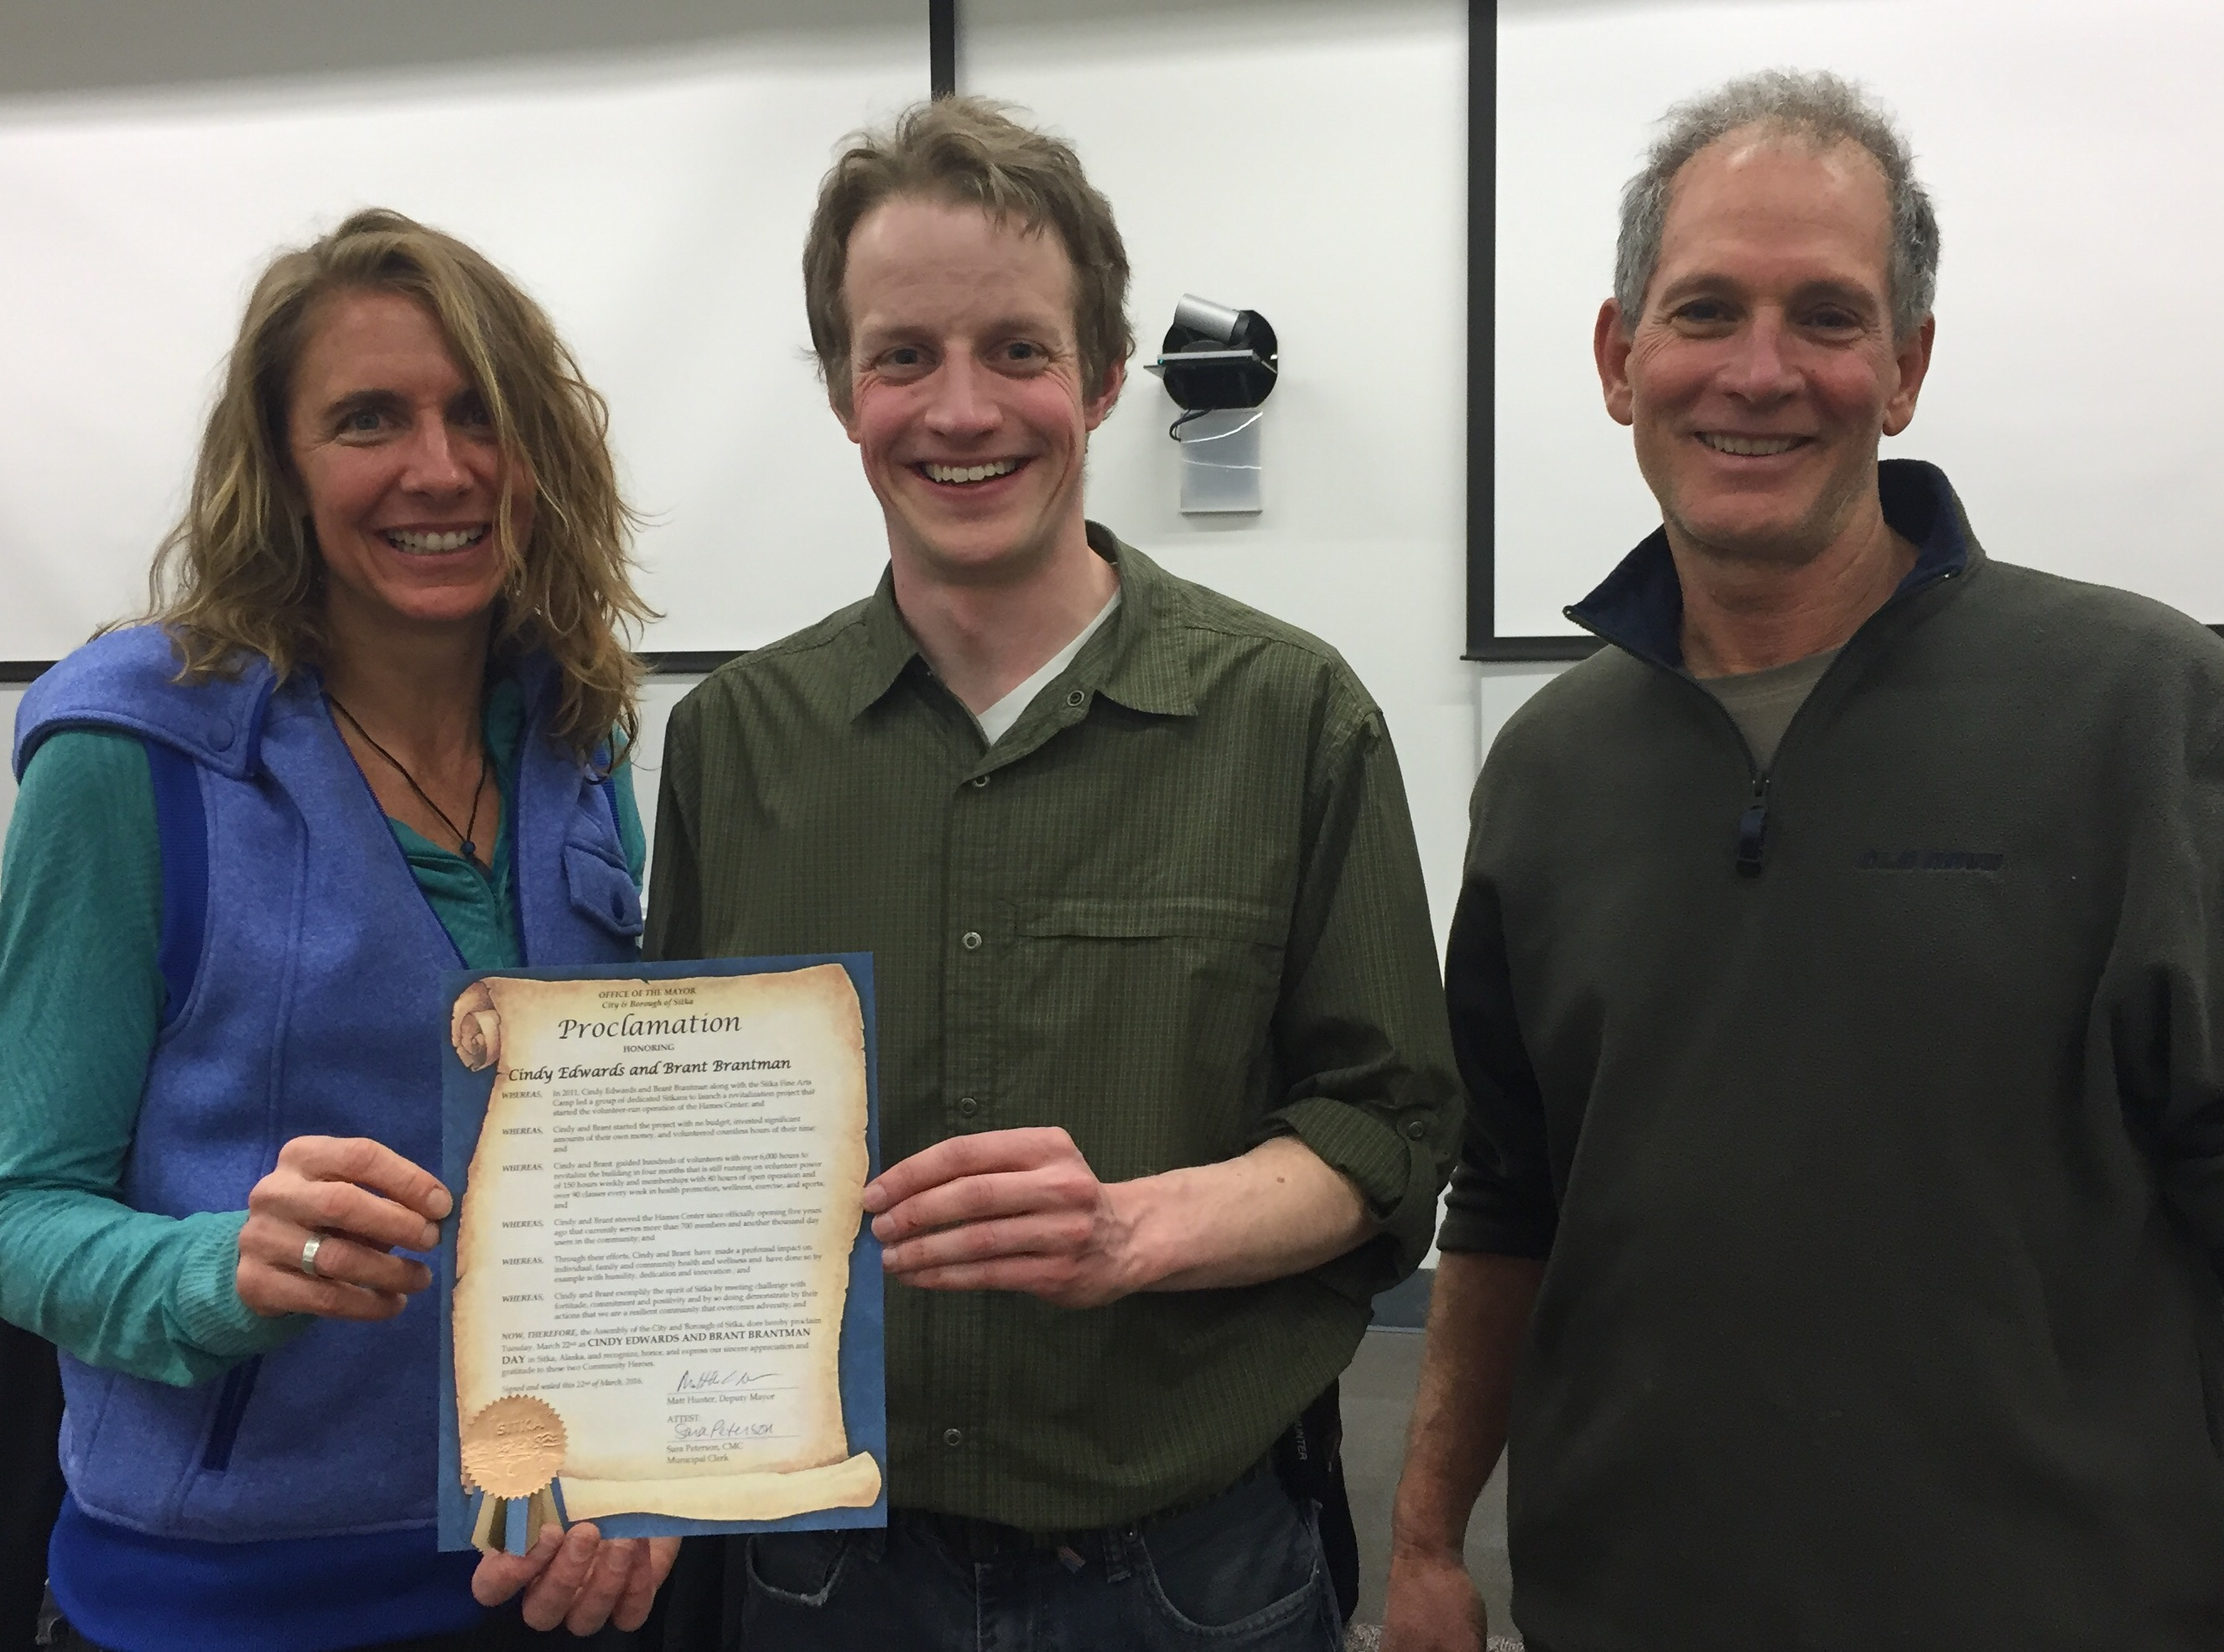 City proclaims special day for Hames Center duo